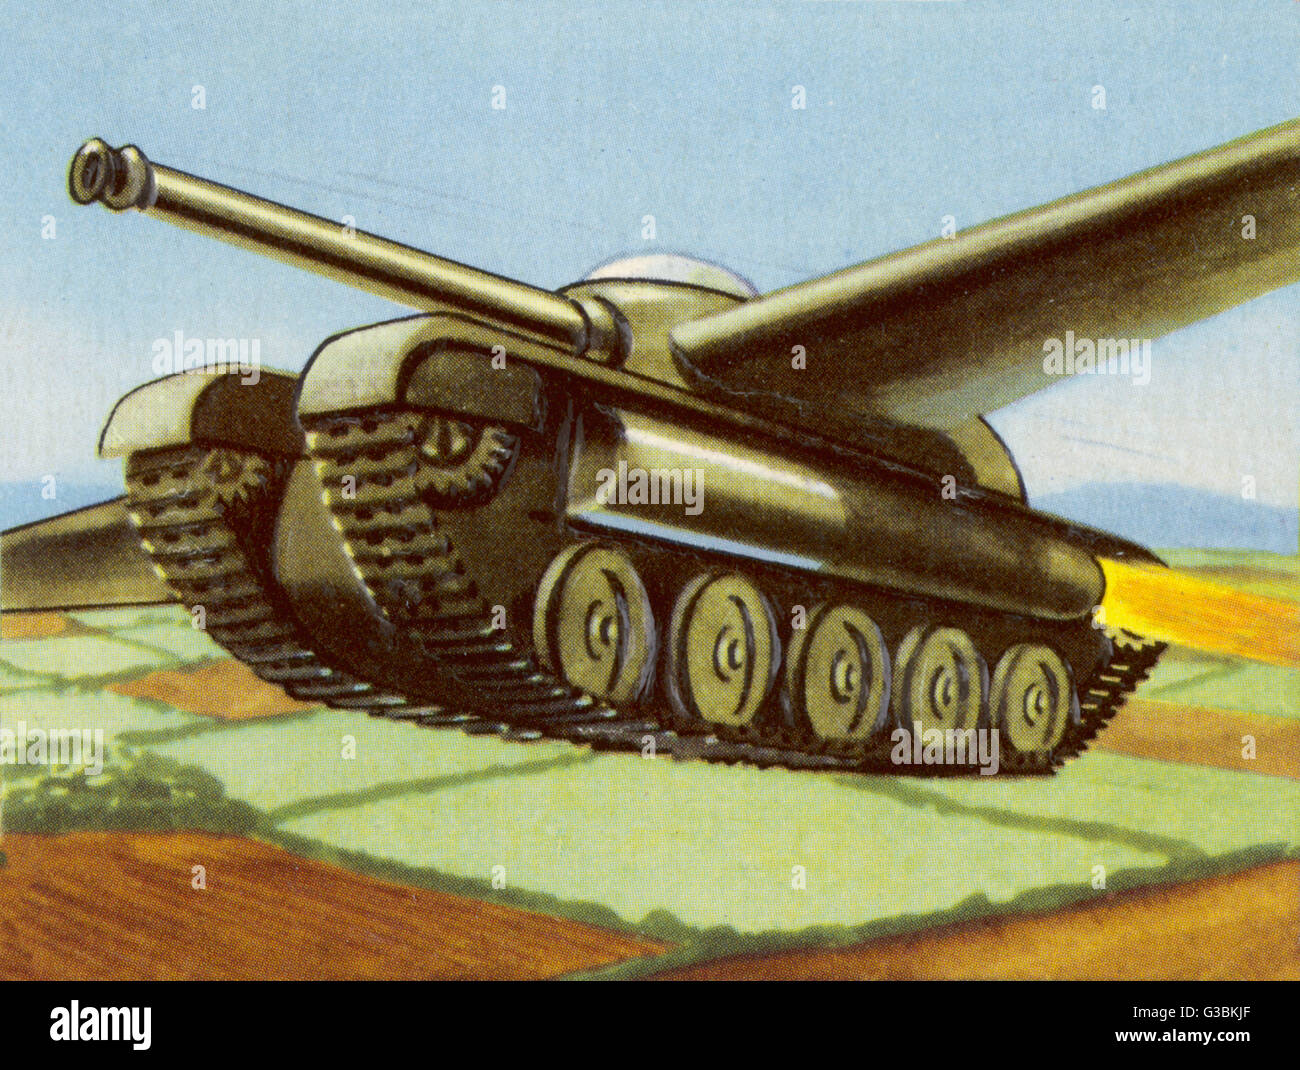 TANK EQUIPPED WITH  RETRACTABLE WINGS        Date: circa 1950 - Stock Image